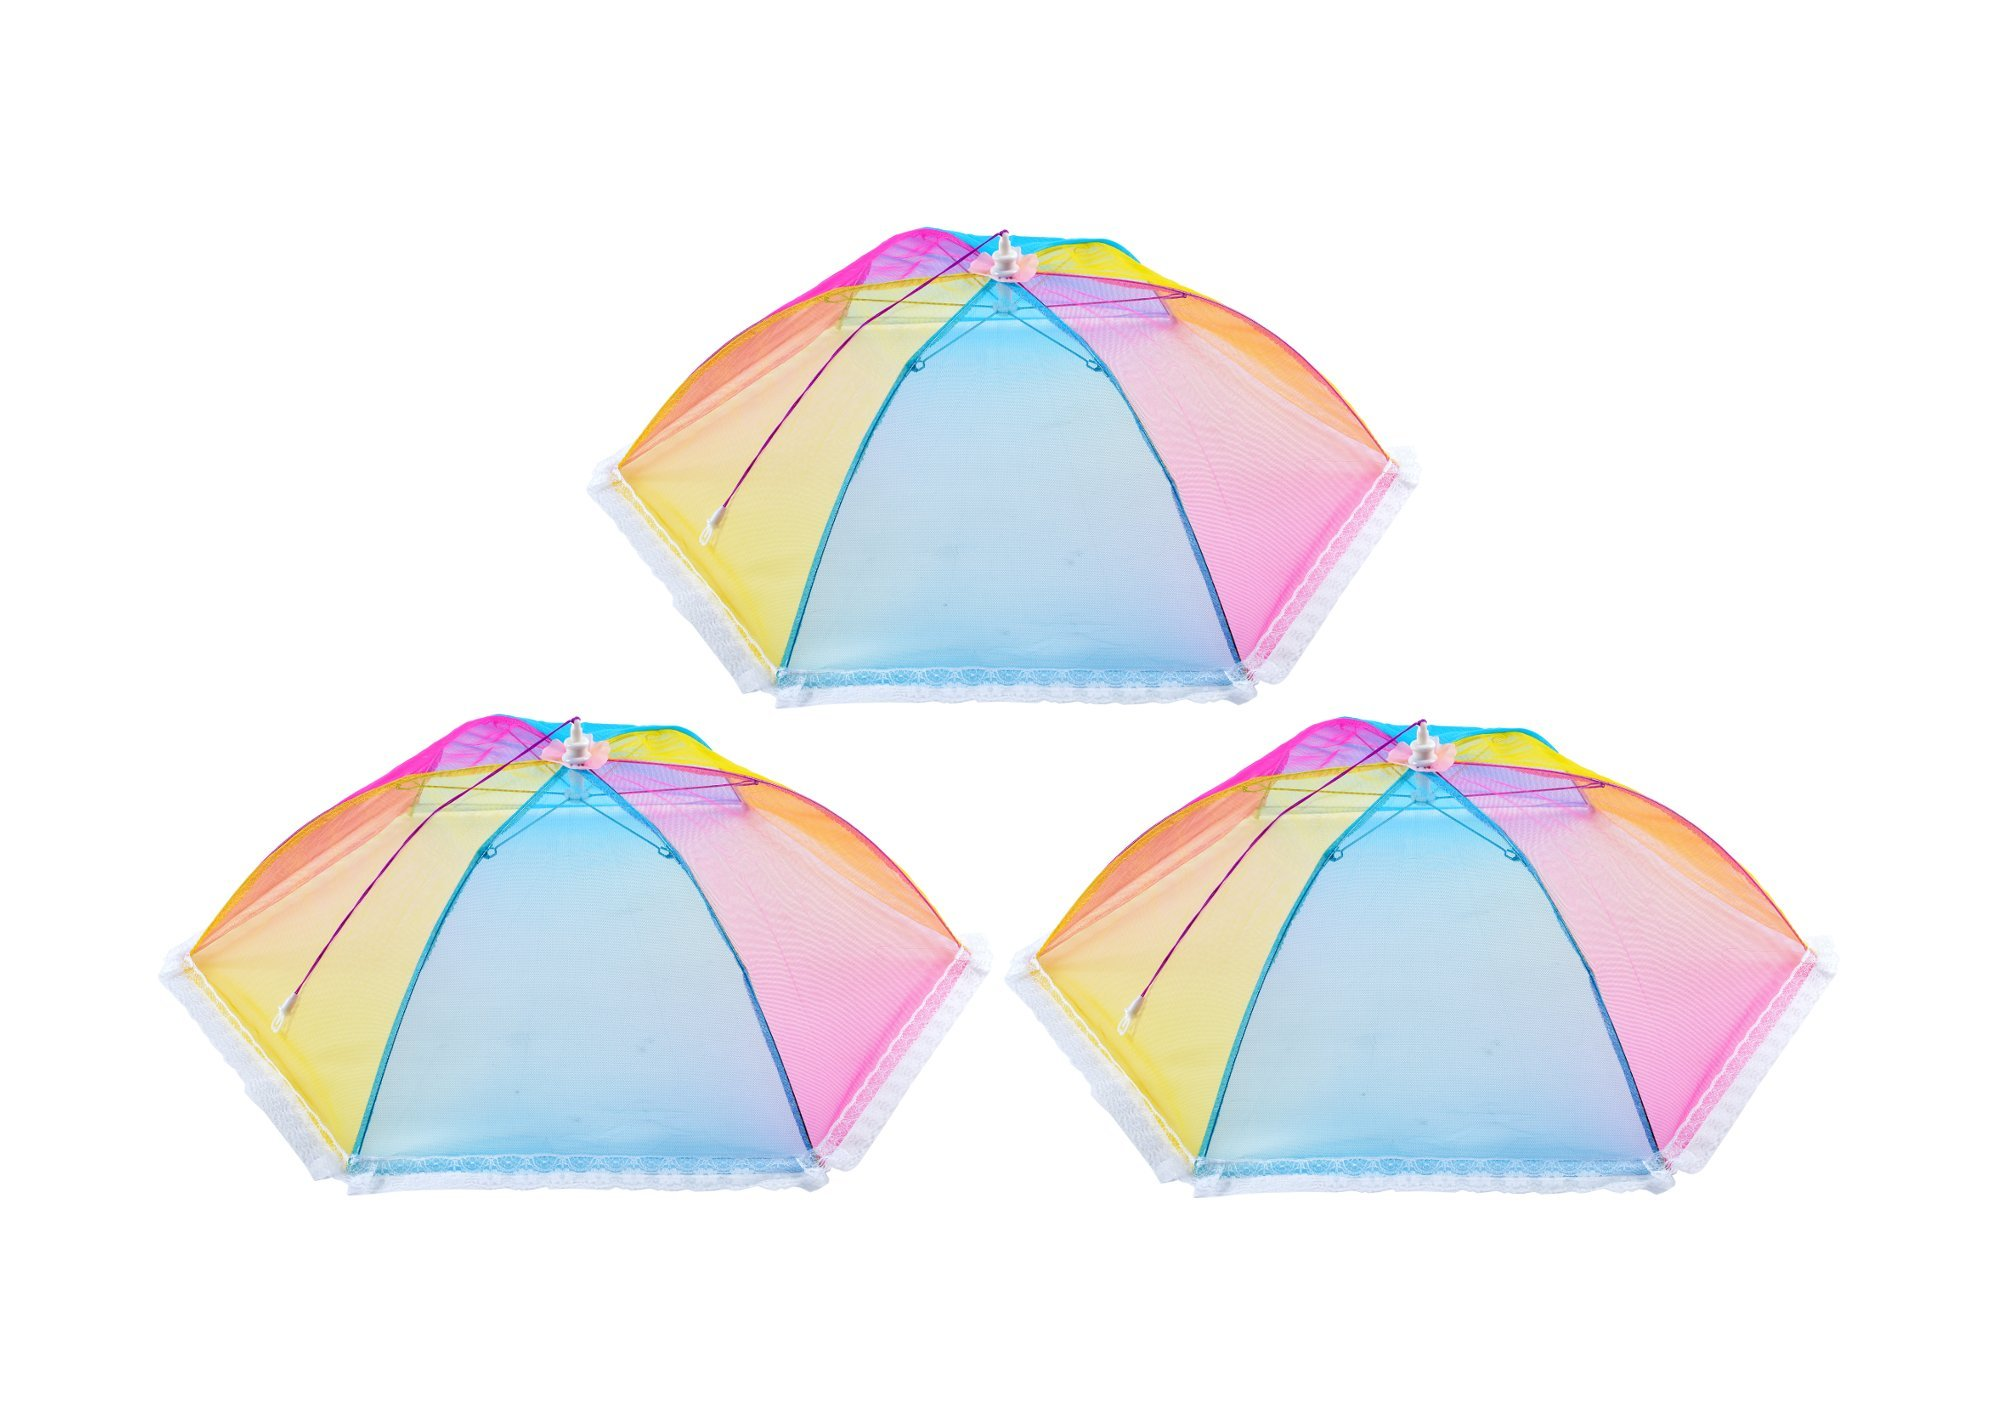 Opulic Mesh Screen Food Cover Tents Collapsible - Set of 3 Colorful Pop Up Hexagonal Dome, 24''Diameter 7''Tall, Suitable for Picnic Outdoor or Indoor on the Table, Umbrella Net Keeps Out Flies and Bugs